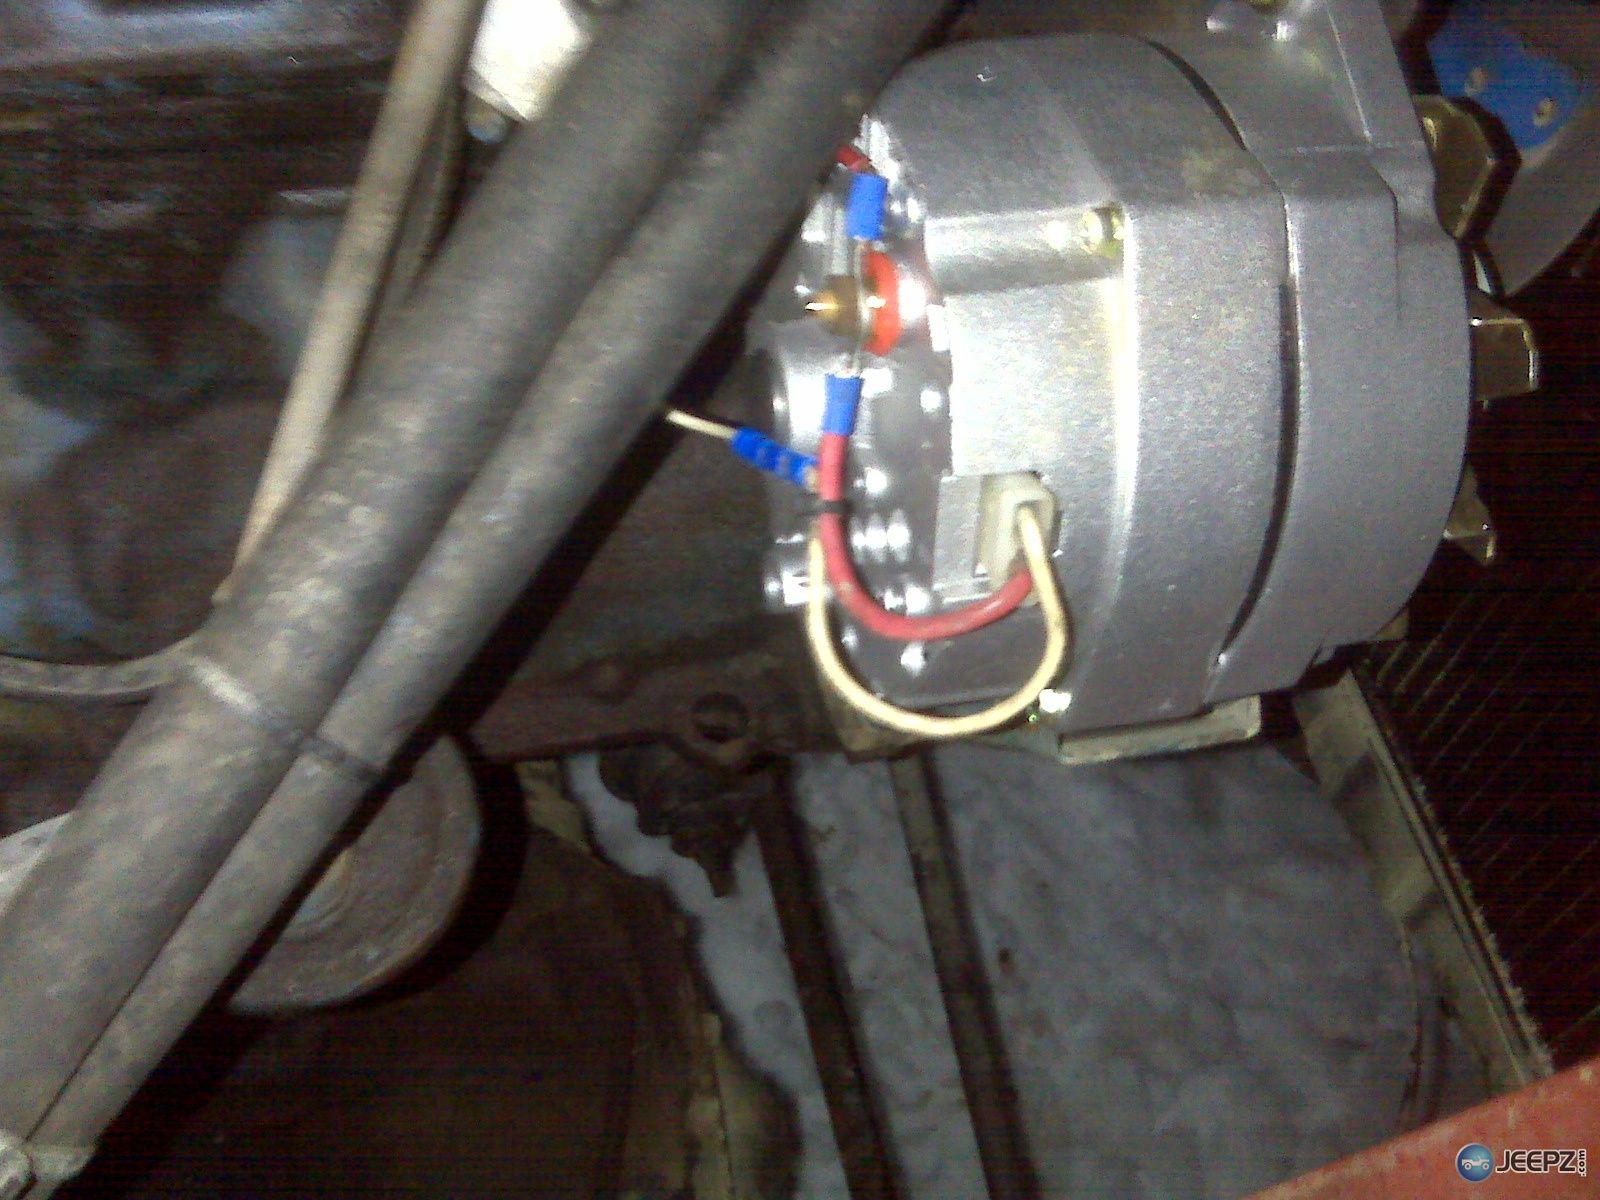 1695d1227659317 dead battery jeep quits new alternator img00042 dead battery, jeep quits, new alternator jeep yj alternator wiring diagram at n-0.co